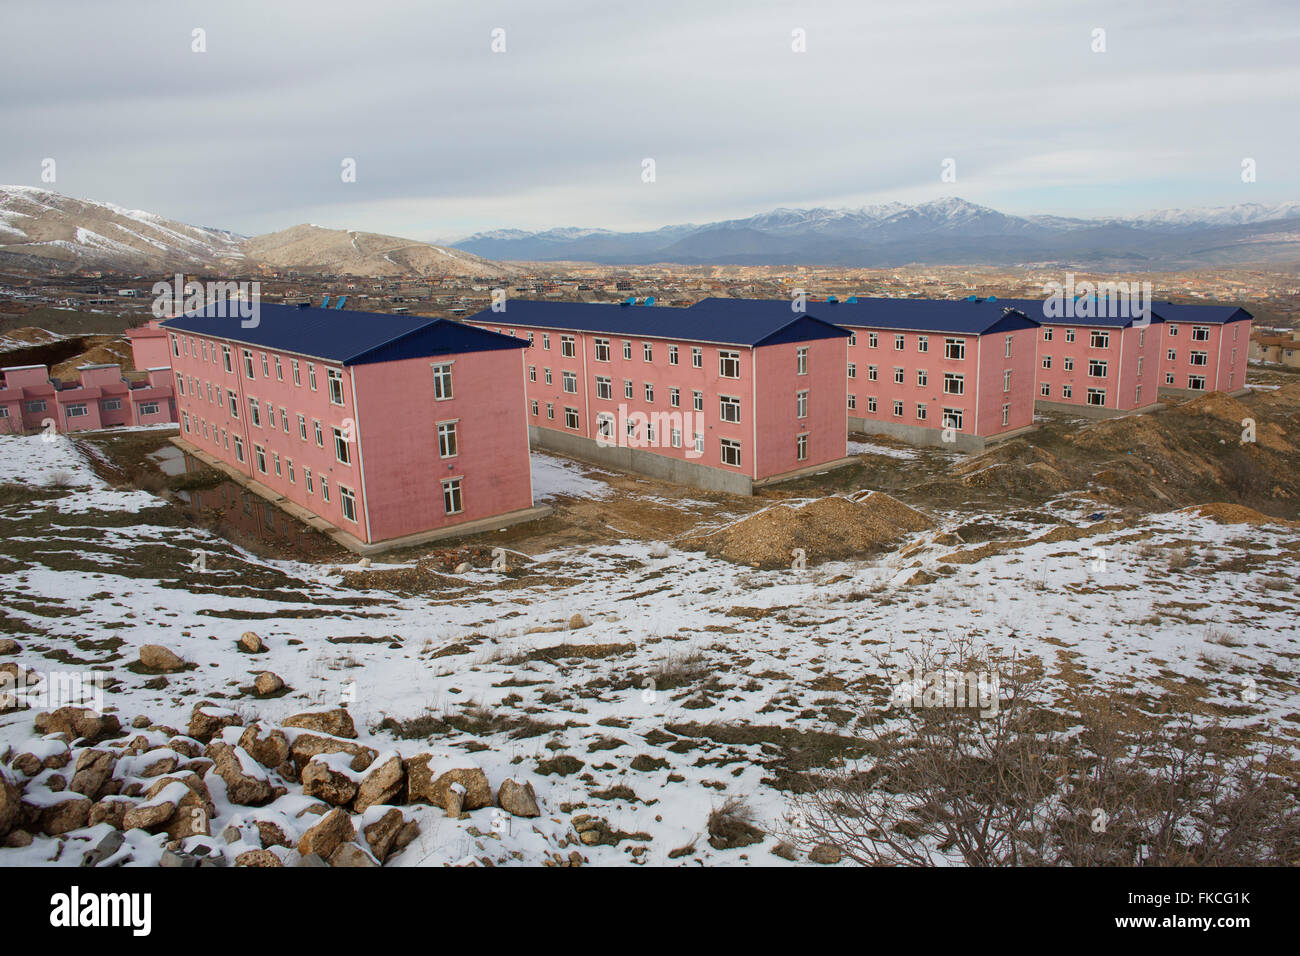 housing project in Northern Iraq Stock Photo